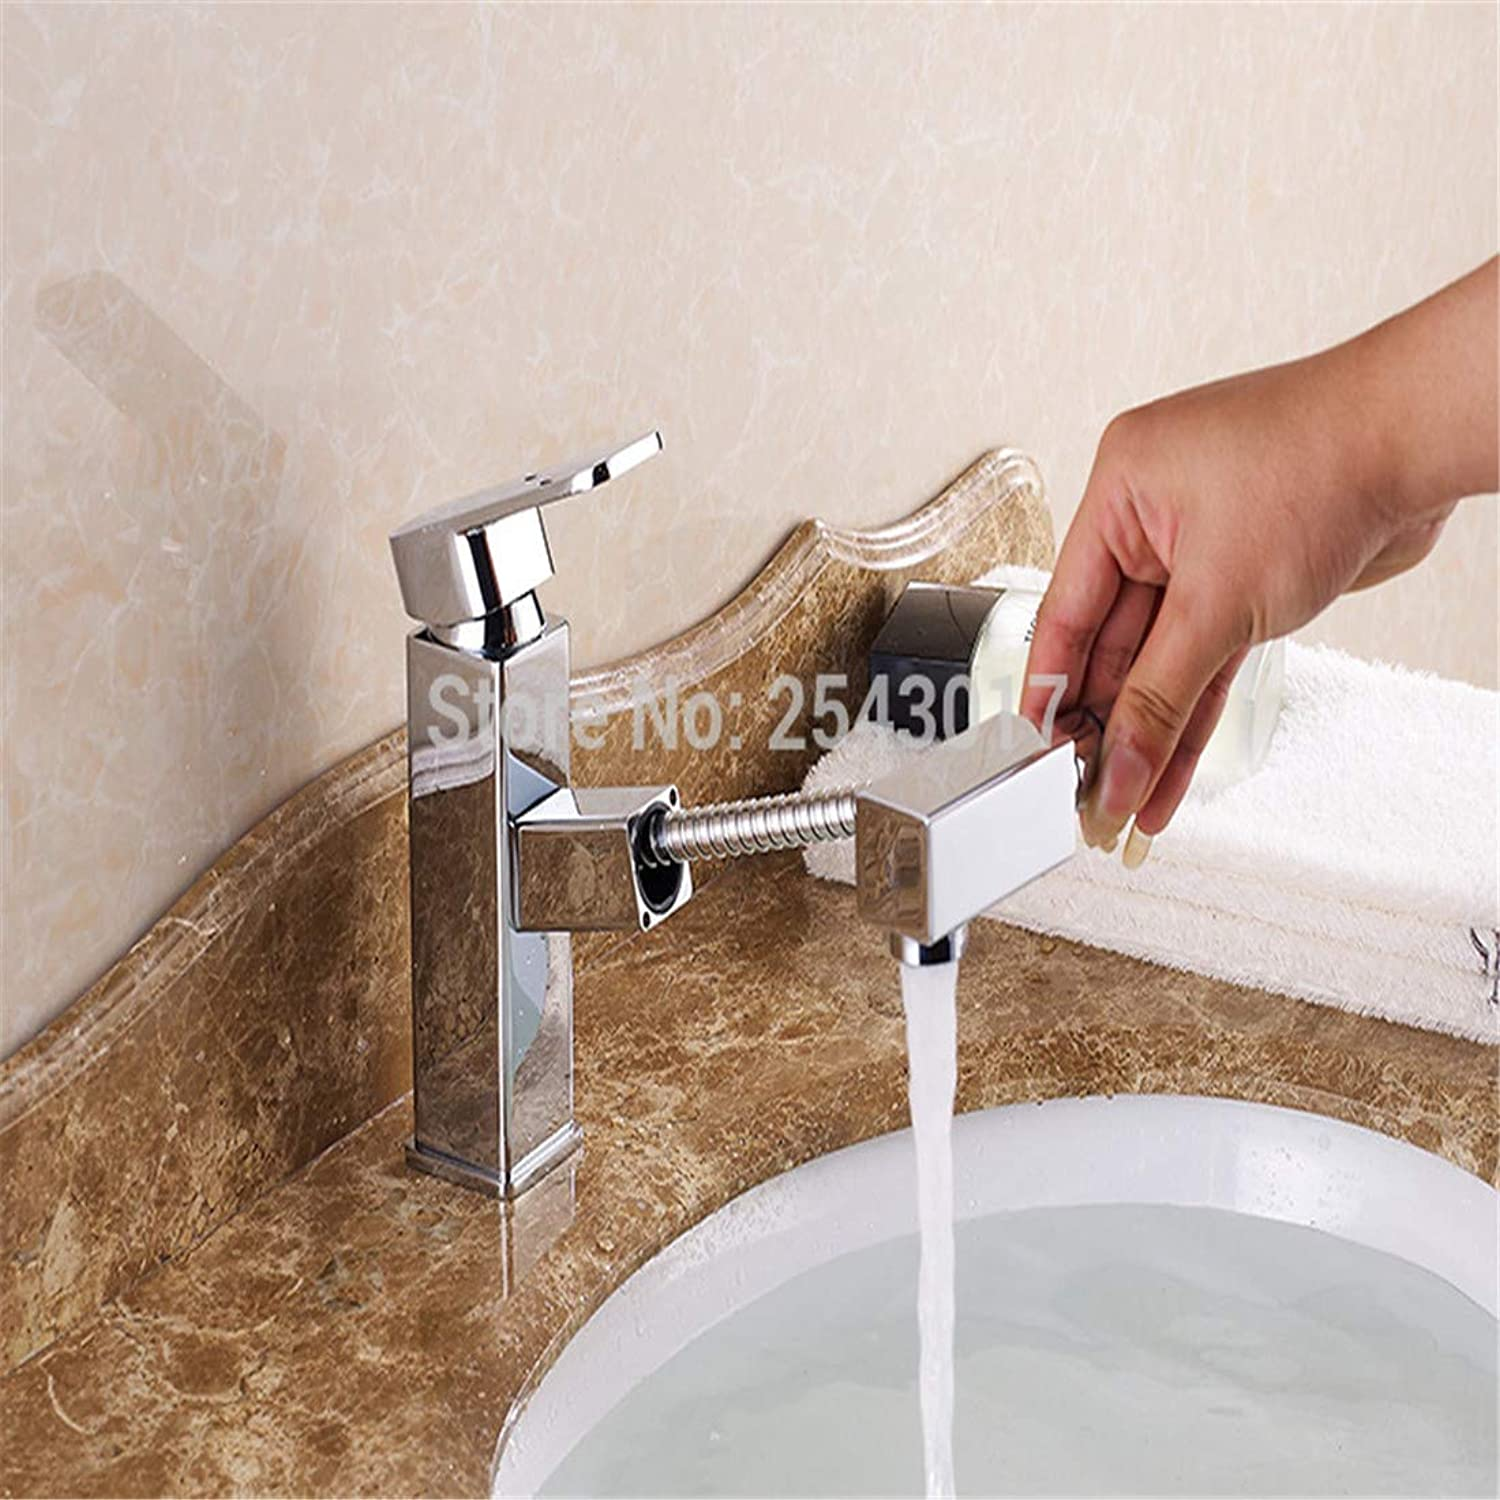 Luxury Modern Hot and Cold Faucet Vintage Platingbasin Pull Out Faucet Chrome Finish Bathroom Flexible Square Mixer Crane